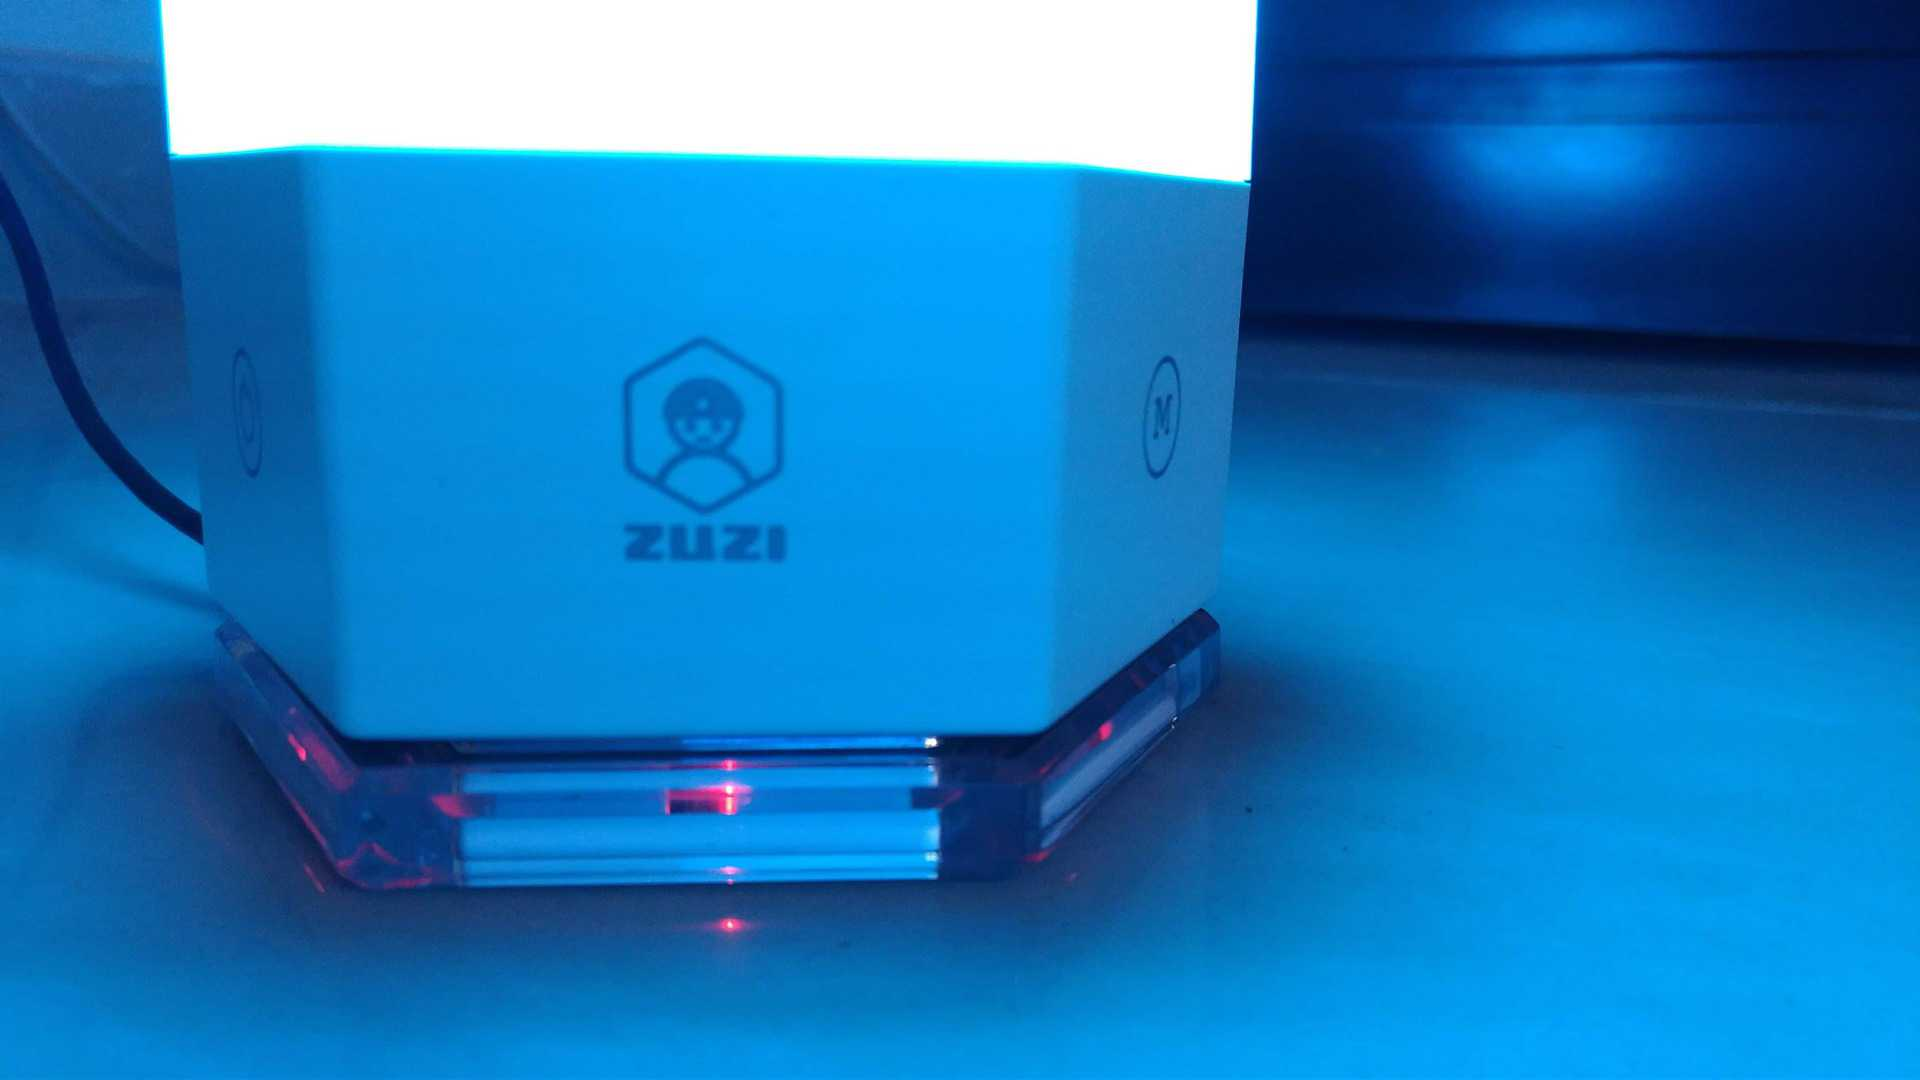 zuzilite-smart-lamp-review-hexagonal-structure